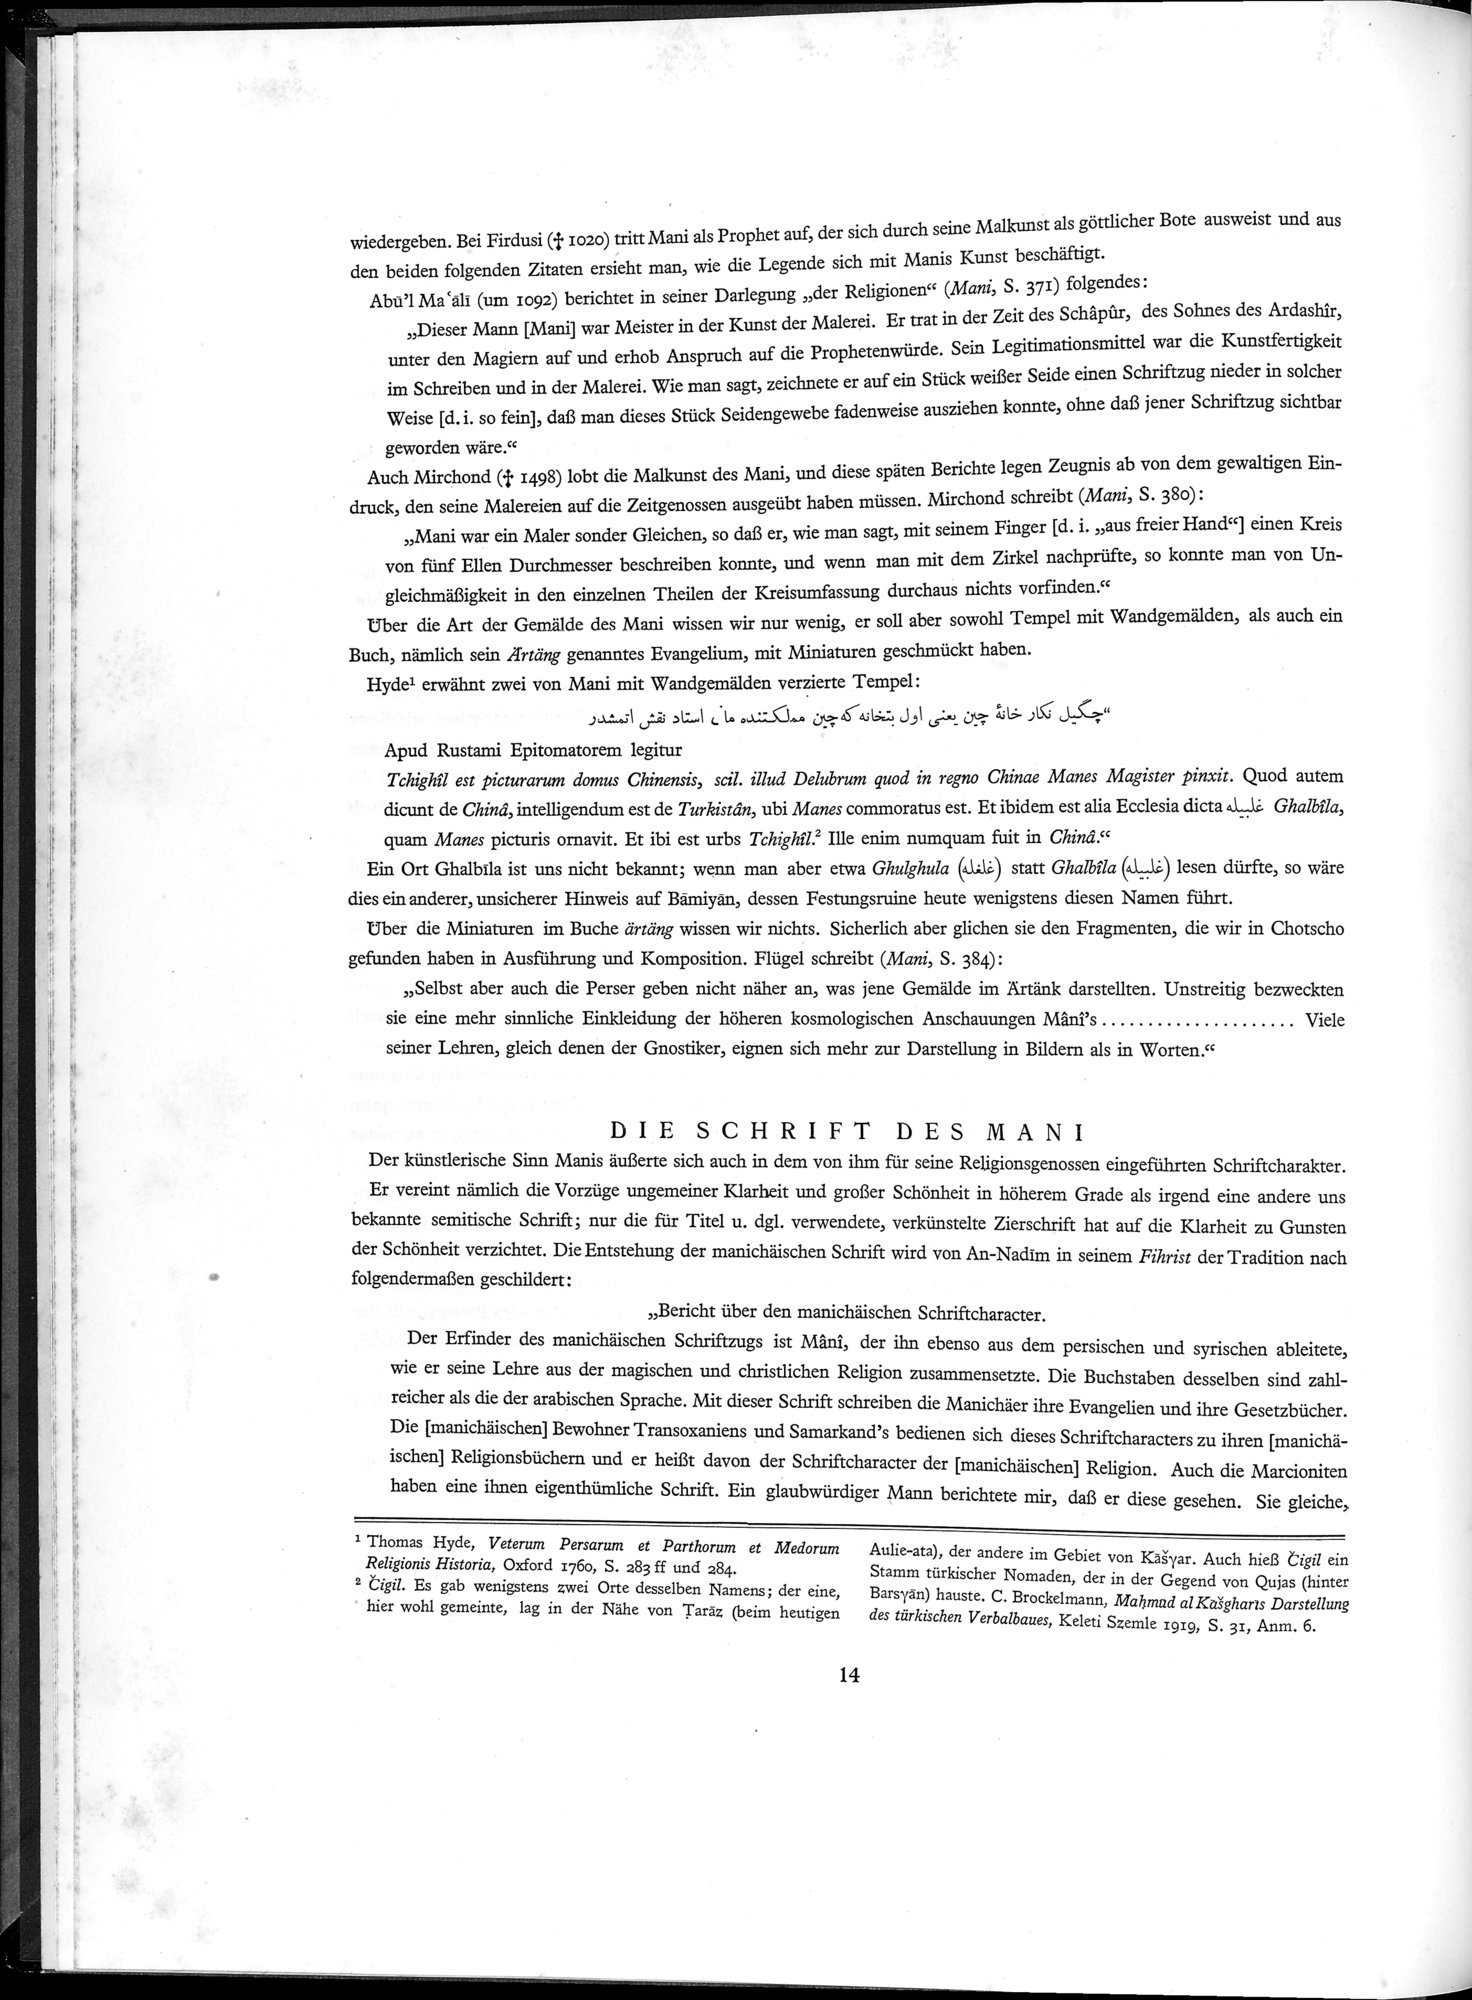 Die Buddhistische Spätantike in Mittelasien : vol.2 / Page 18 (Grayscale High Resolution Image)